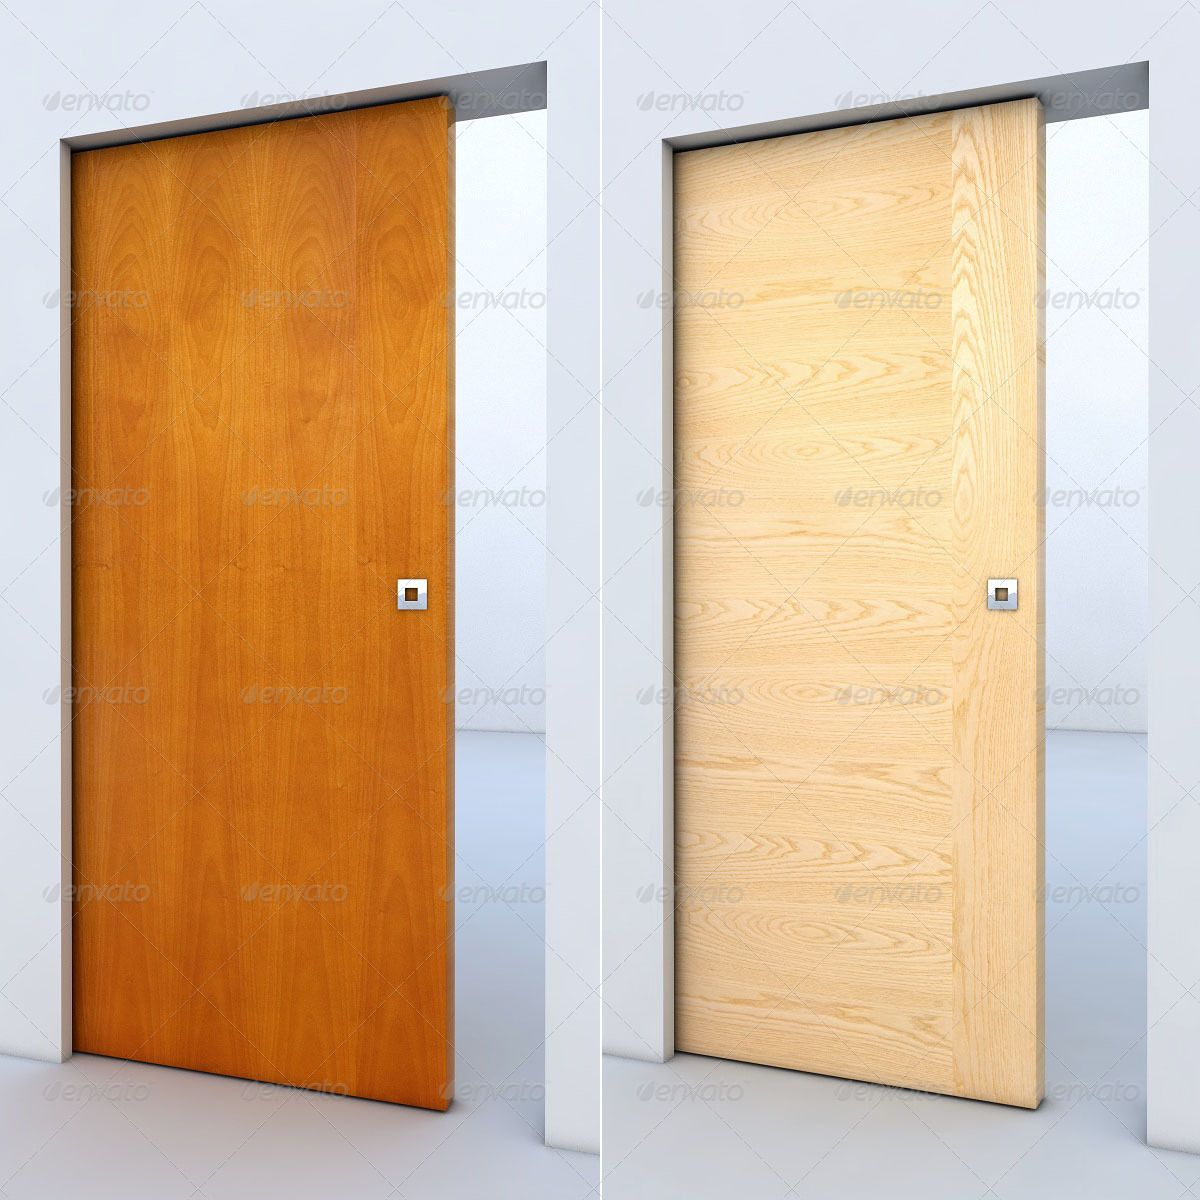 10 Wood Doors Panels With Bump Specular Maps Doors Panels Wood Specular Panel Doors Wood Doors Paneling